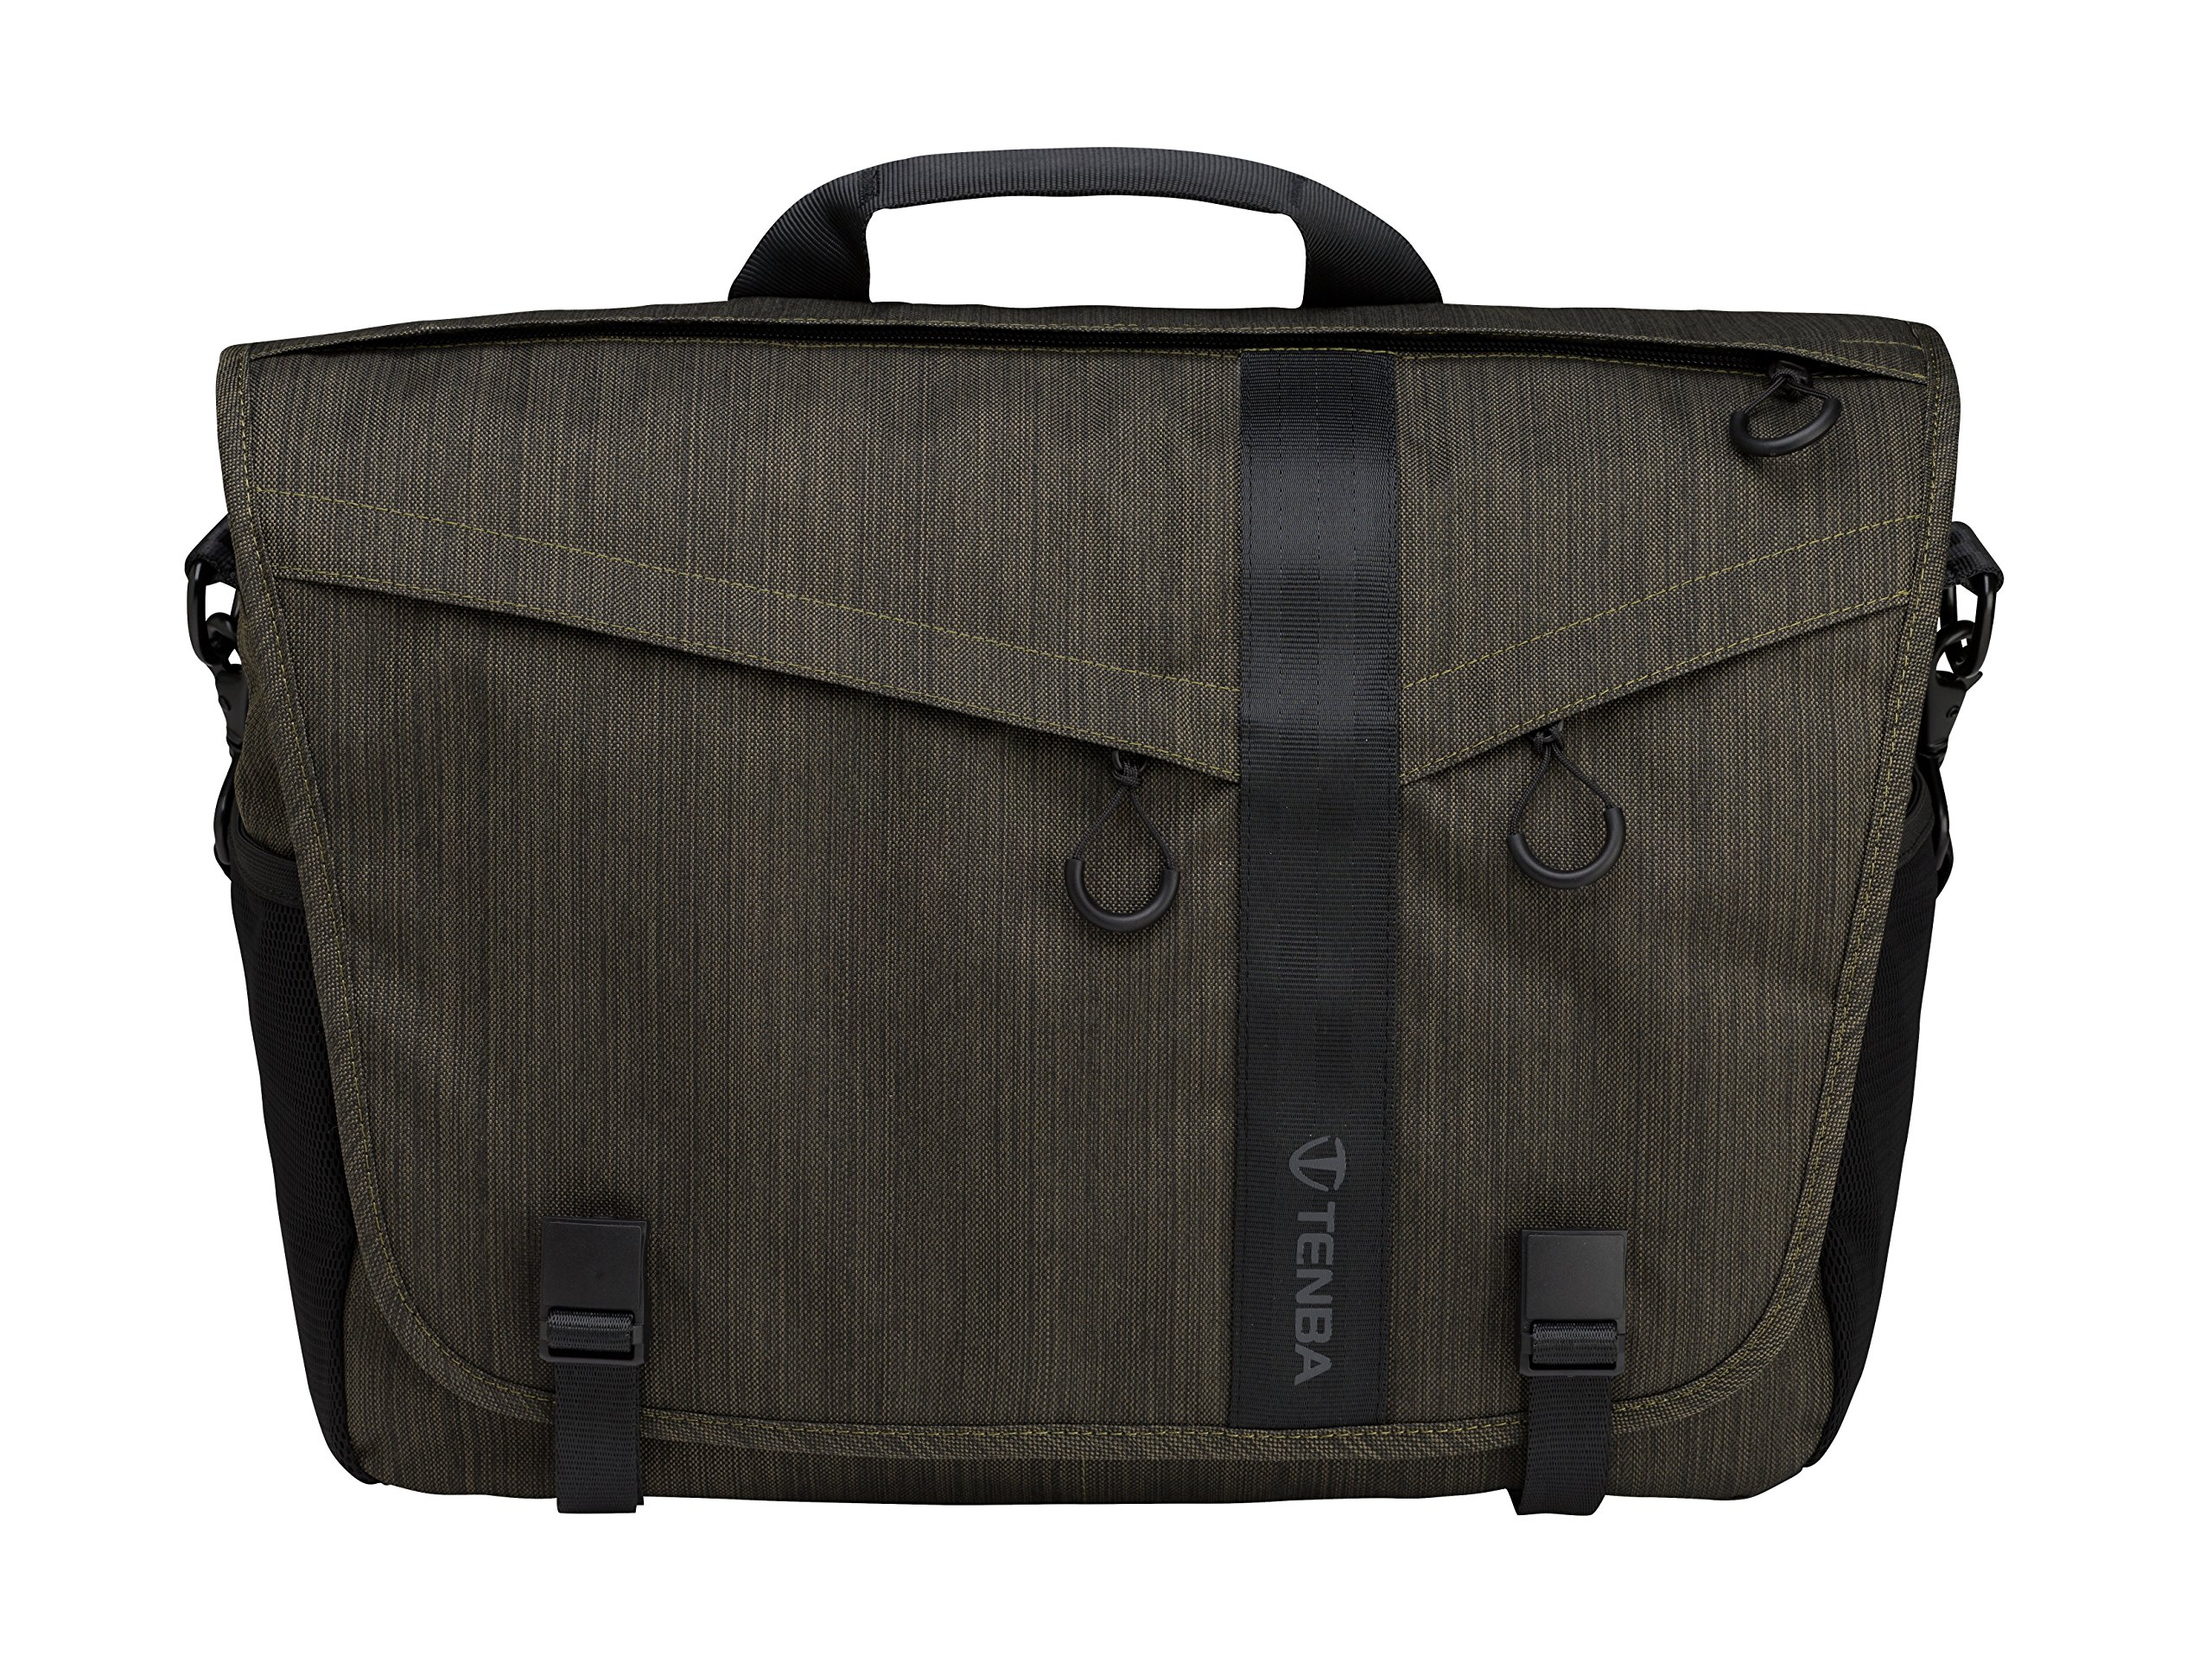 Tenba Messenger DNA 15 Camera and Laptop Bag - Olive (638-382)